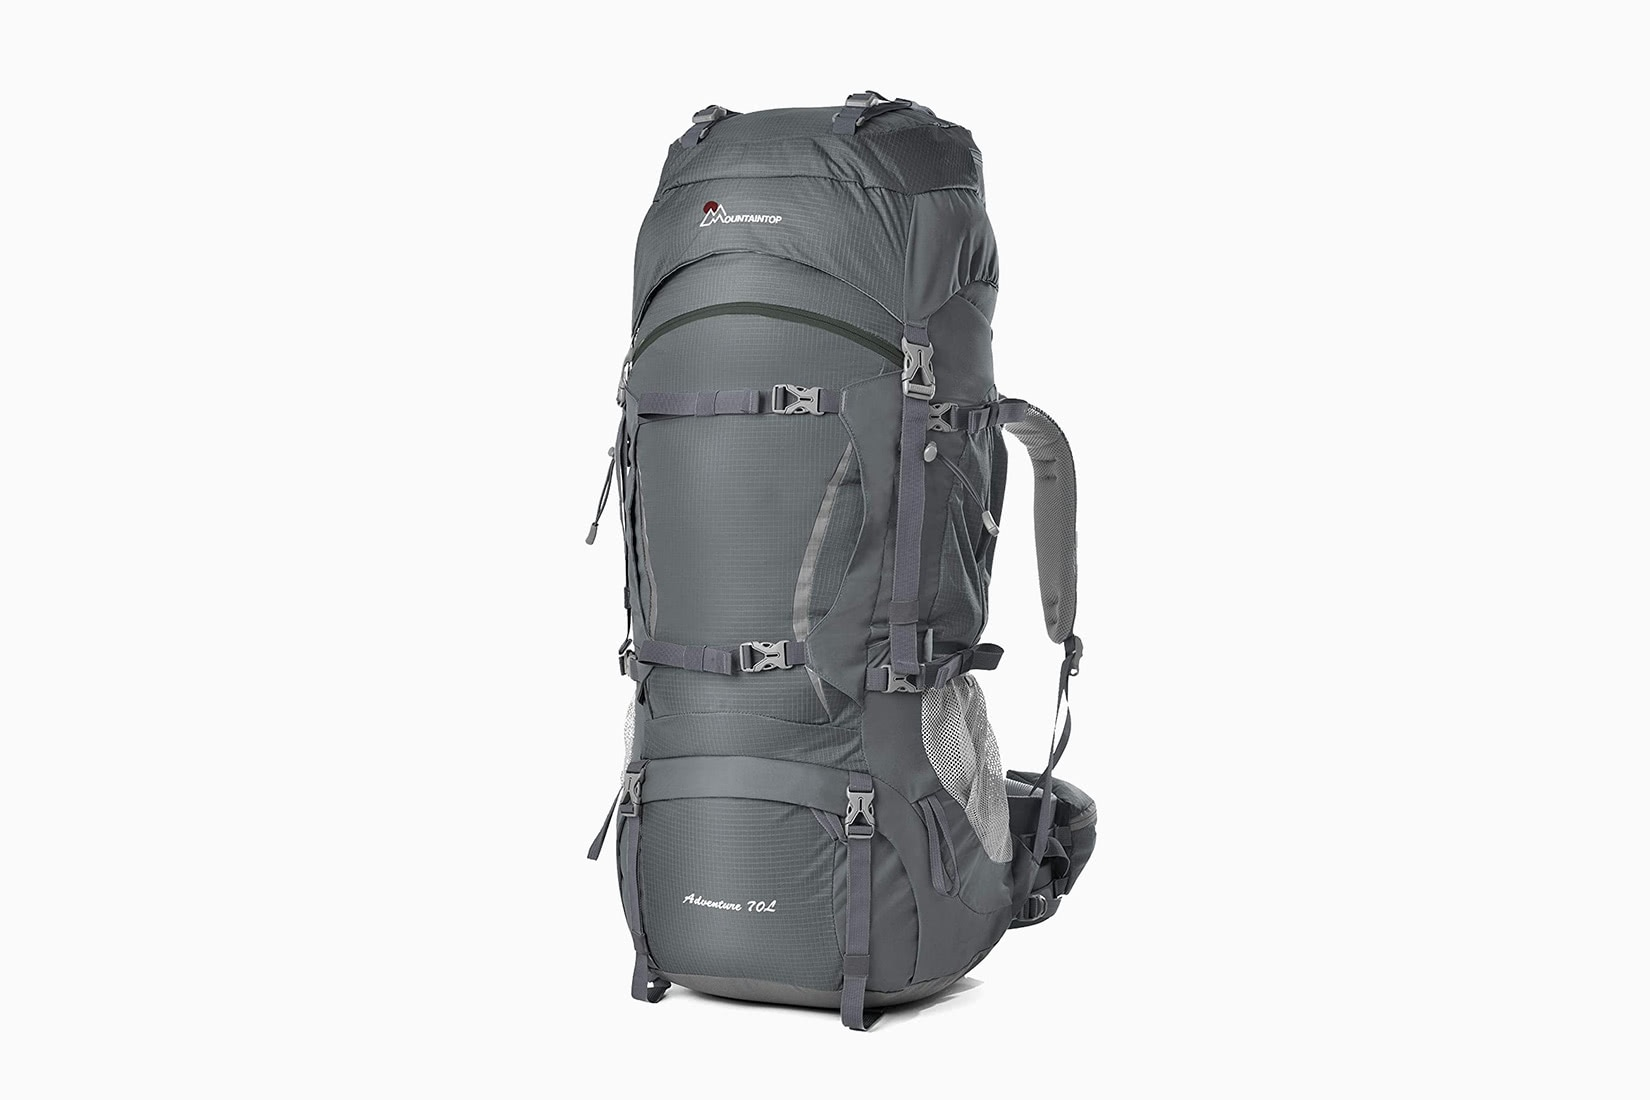 best travel backpack mountaintop 70L hiking - Luxe Digital